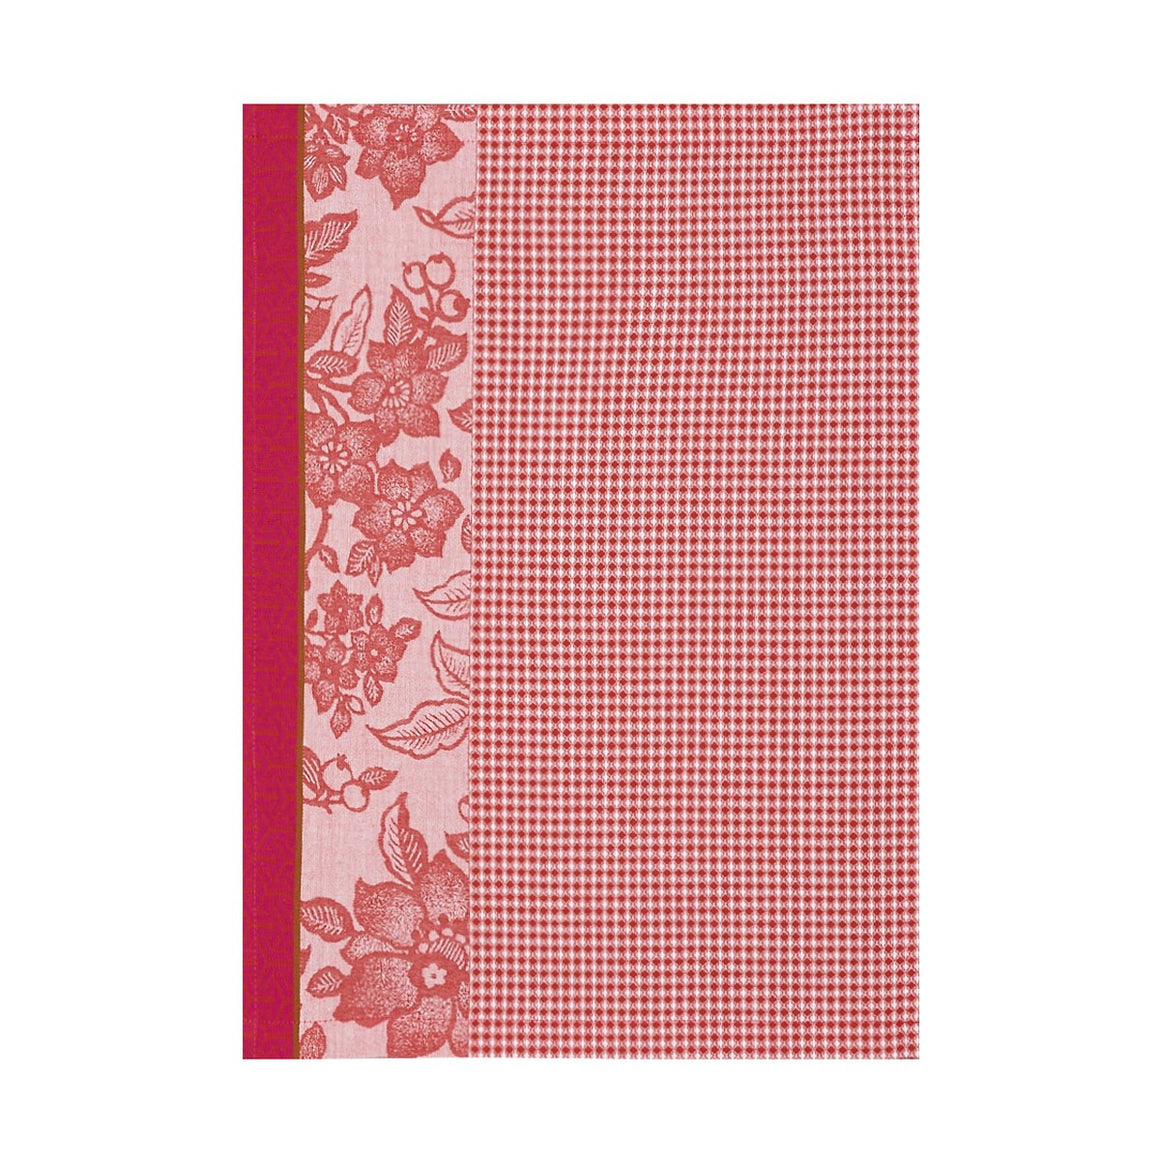 Le Jacquard Francais Chinoiserie Tea Towel - Todd & Holland Tea Merchants